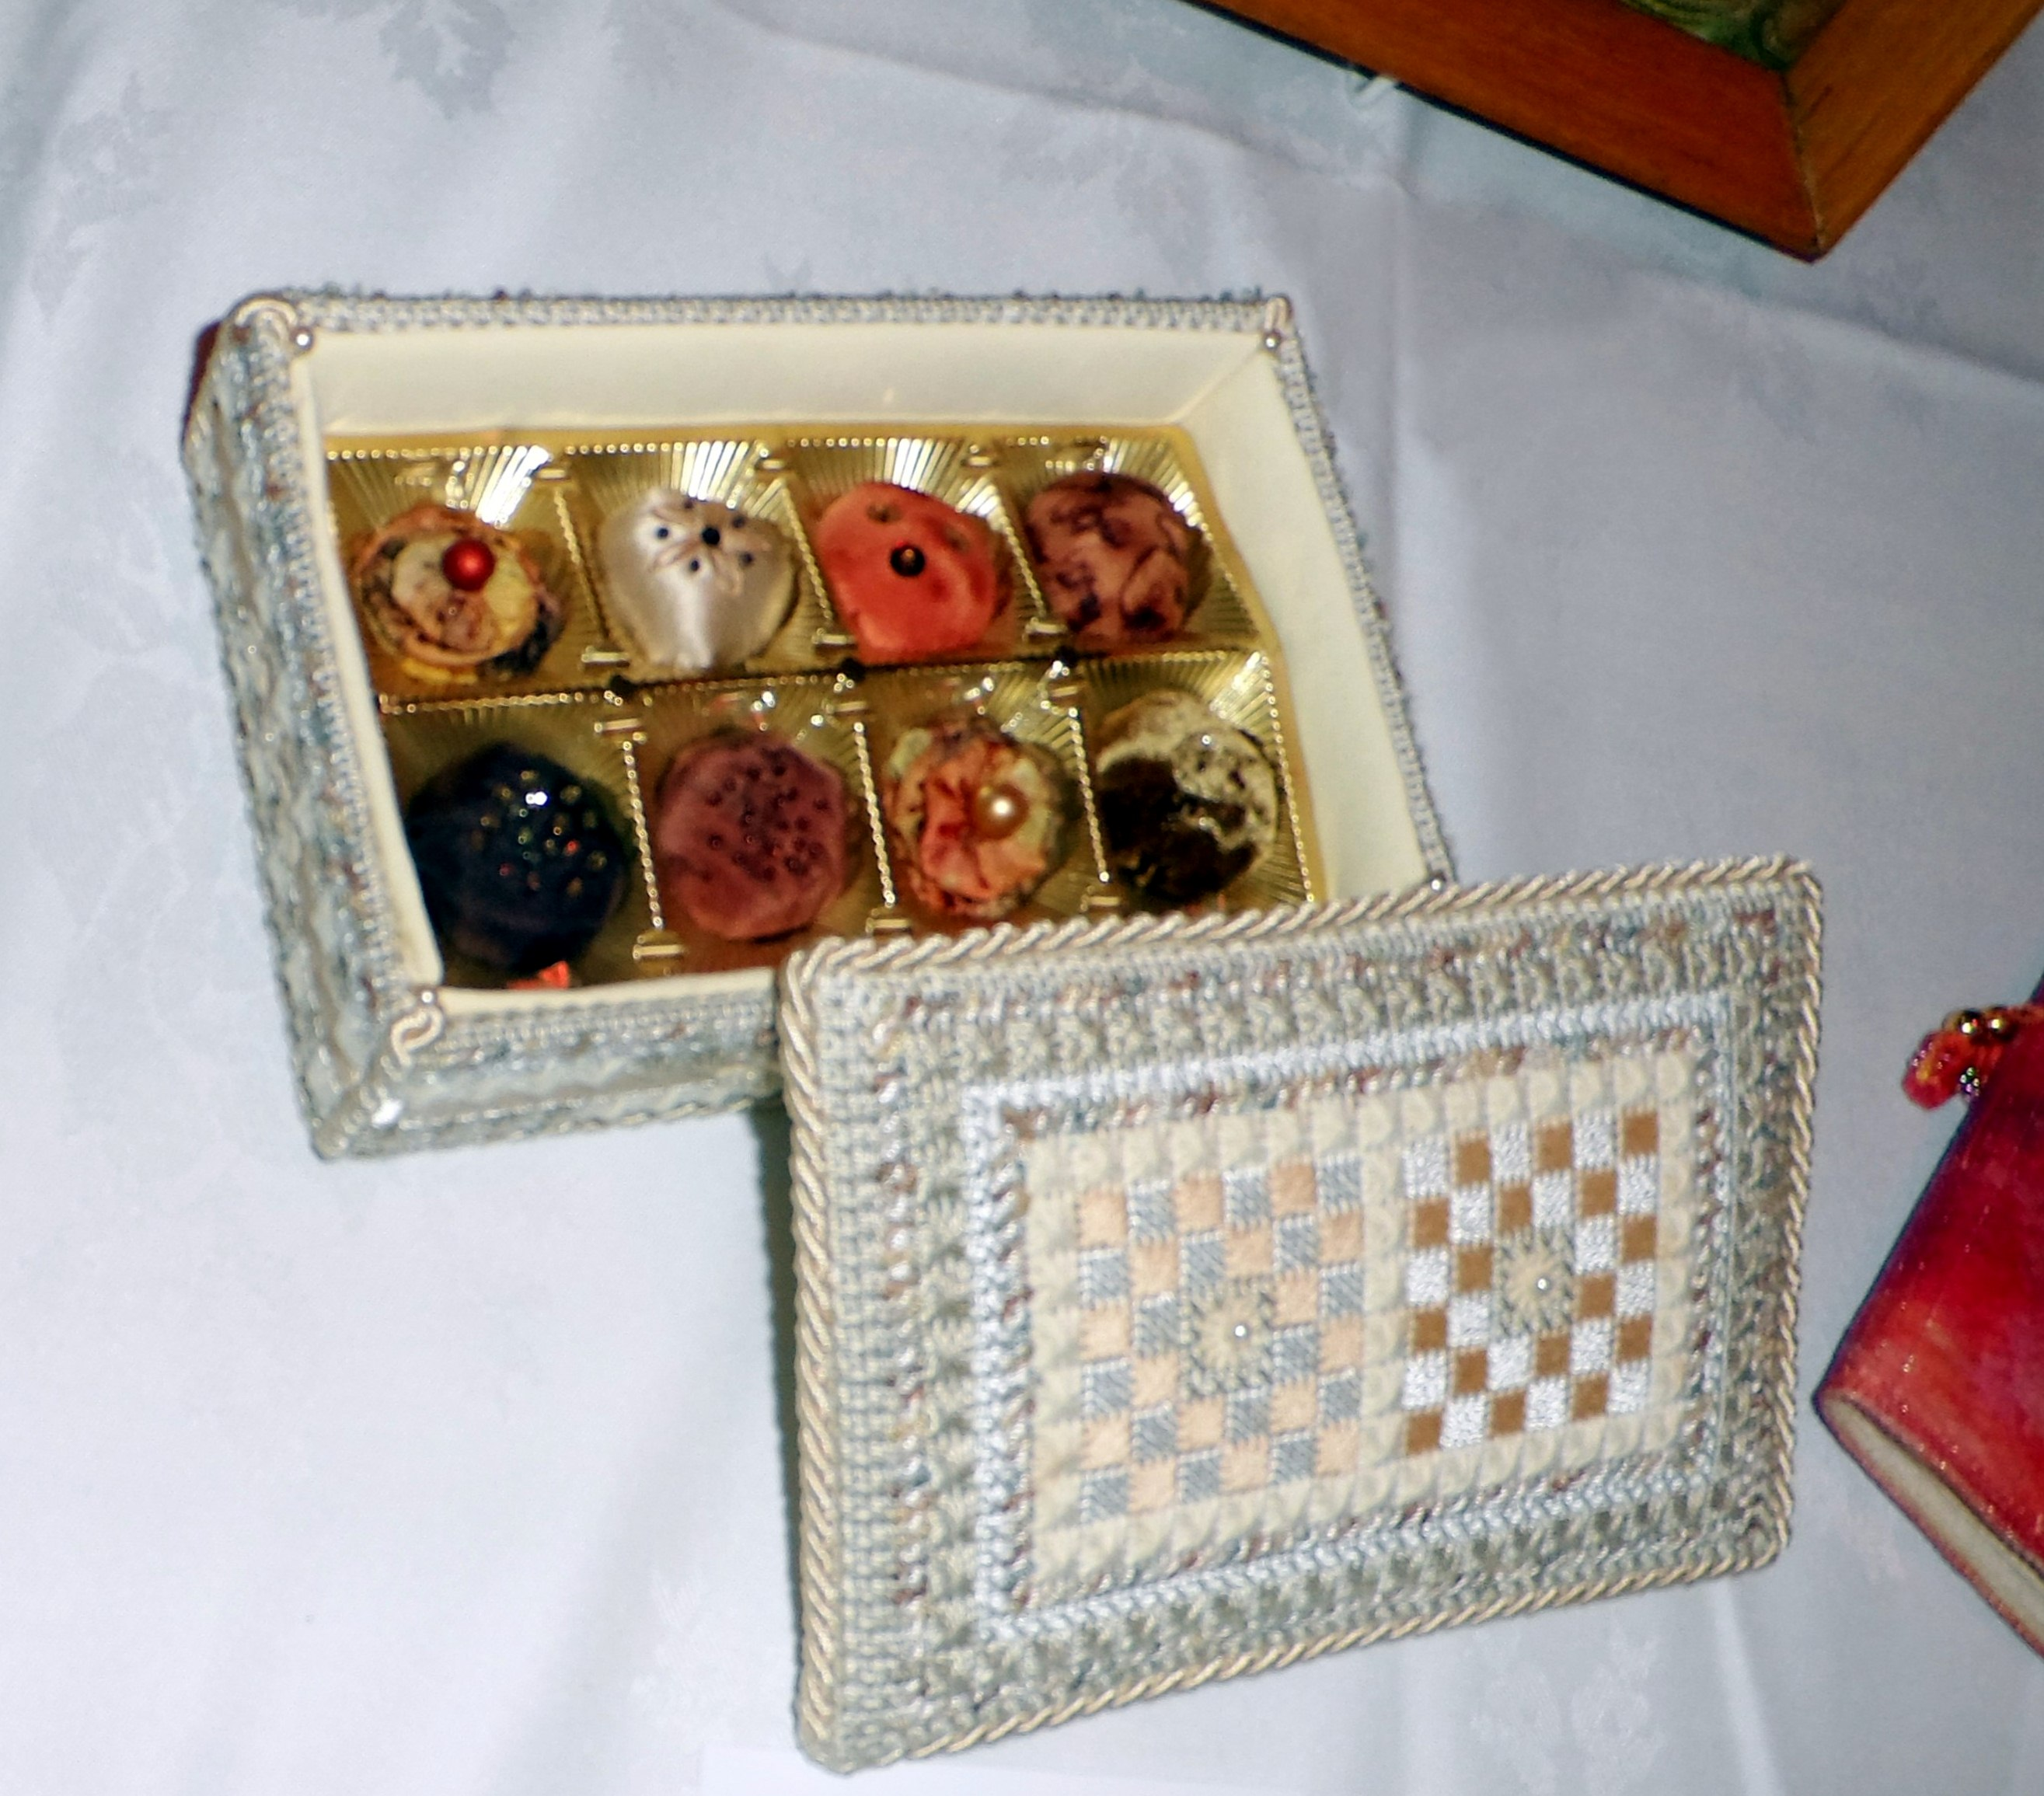 A BOX OF CHOCOLATES by Belinda Rodway  at NW Regional Day, Leyland 2018